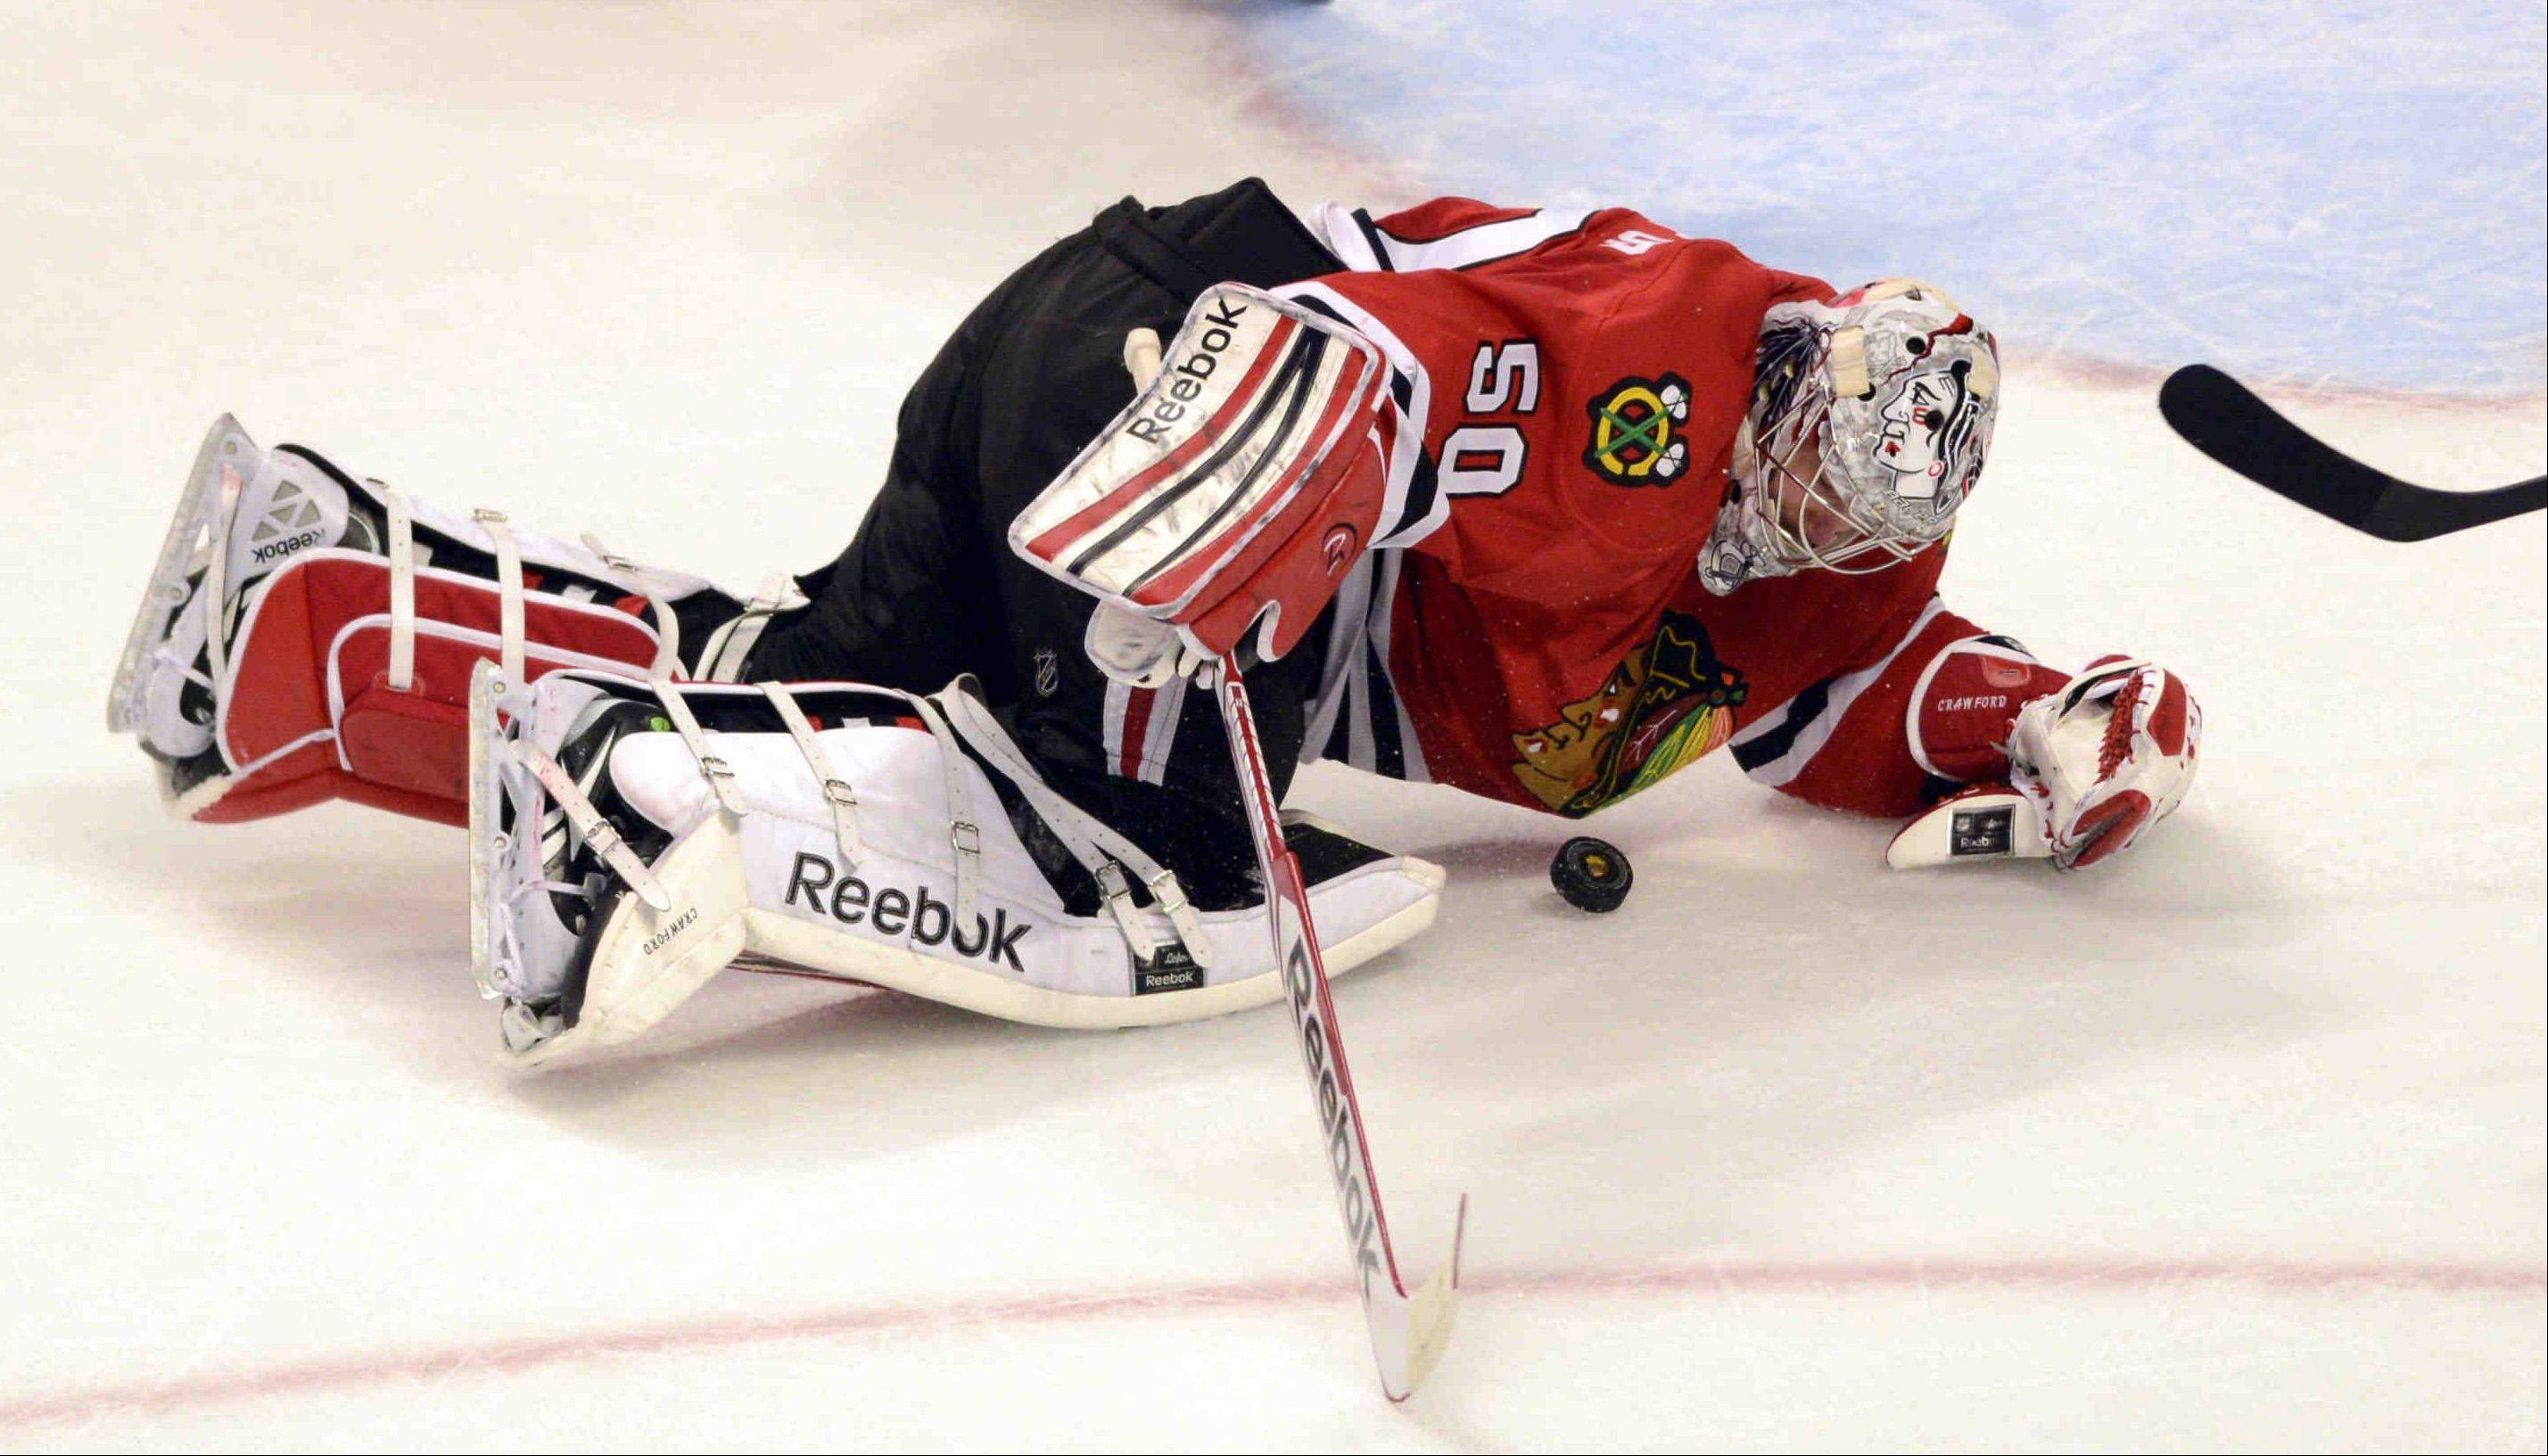 Blackhawks goalie Corey Crawford has won 12 playoff games after going 19-5-5 with a 1.94 goals-against average during the regular season. He has outplayed the Wings� Jimmy Howard and the Kings� Jonathan Quick. Tuukka Rask of the Bruins is next.